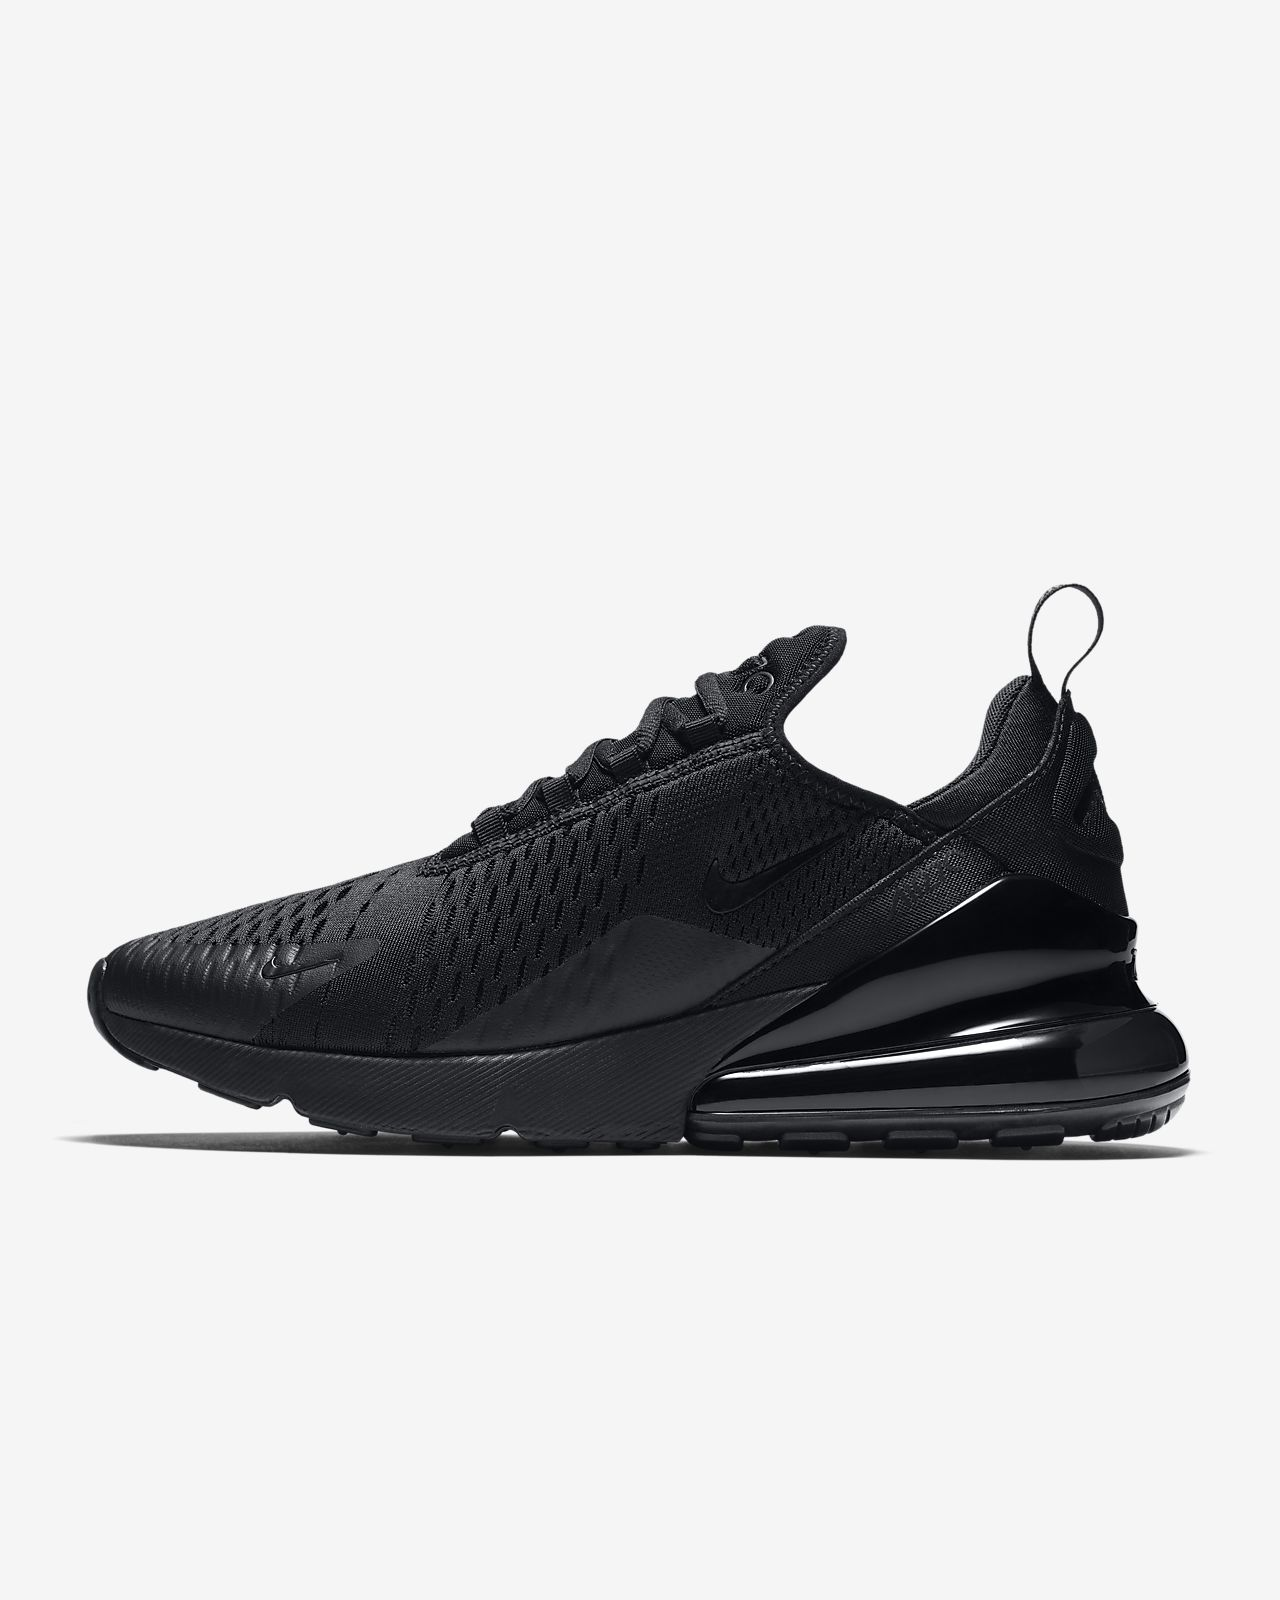 cheaper d0bb8 d3d58 Nike Air Max 270